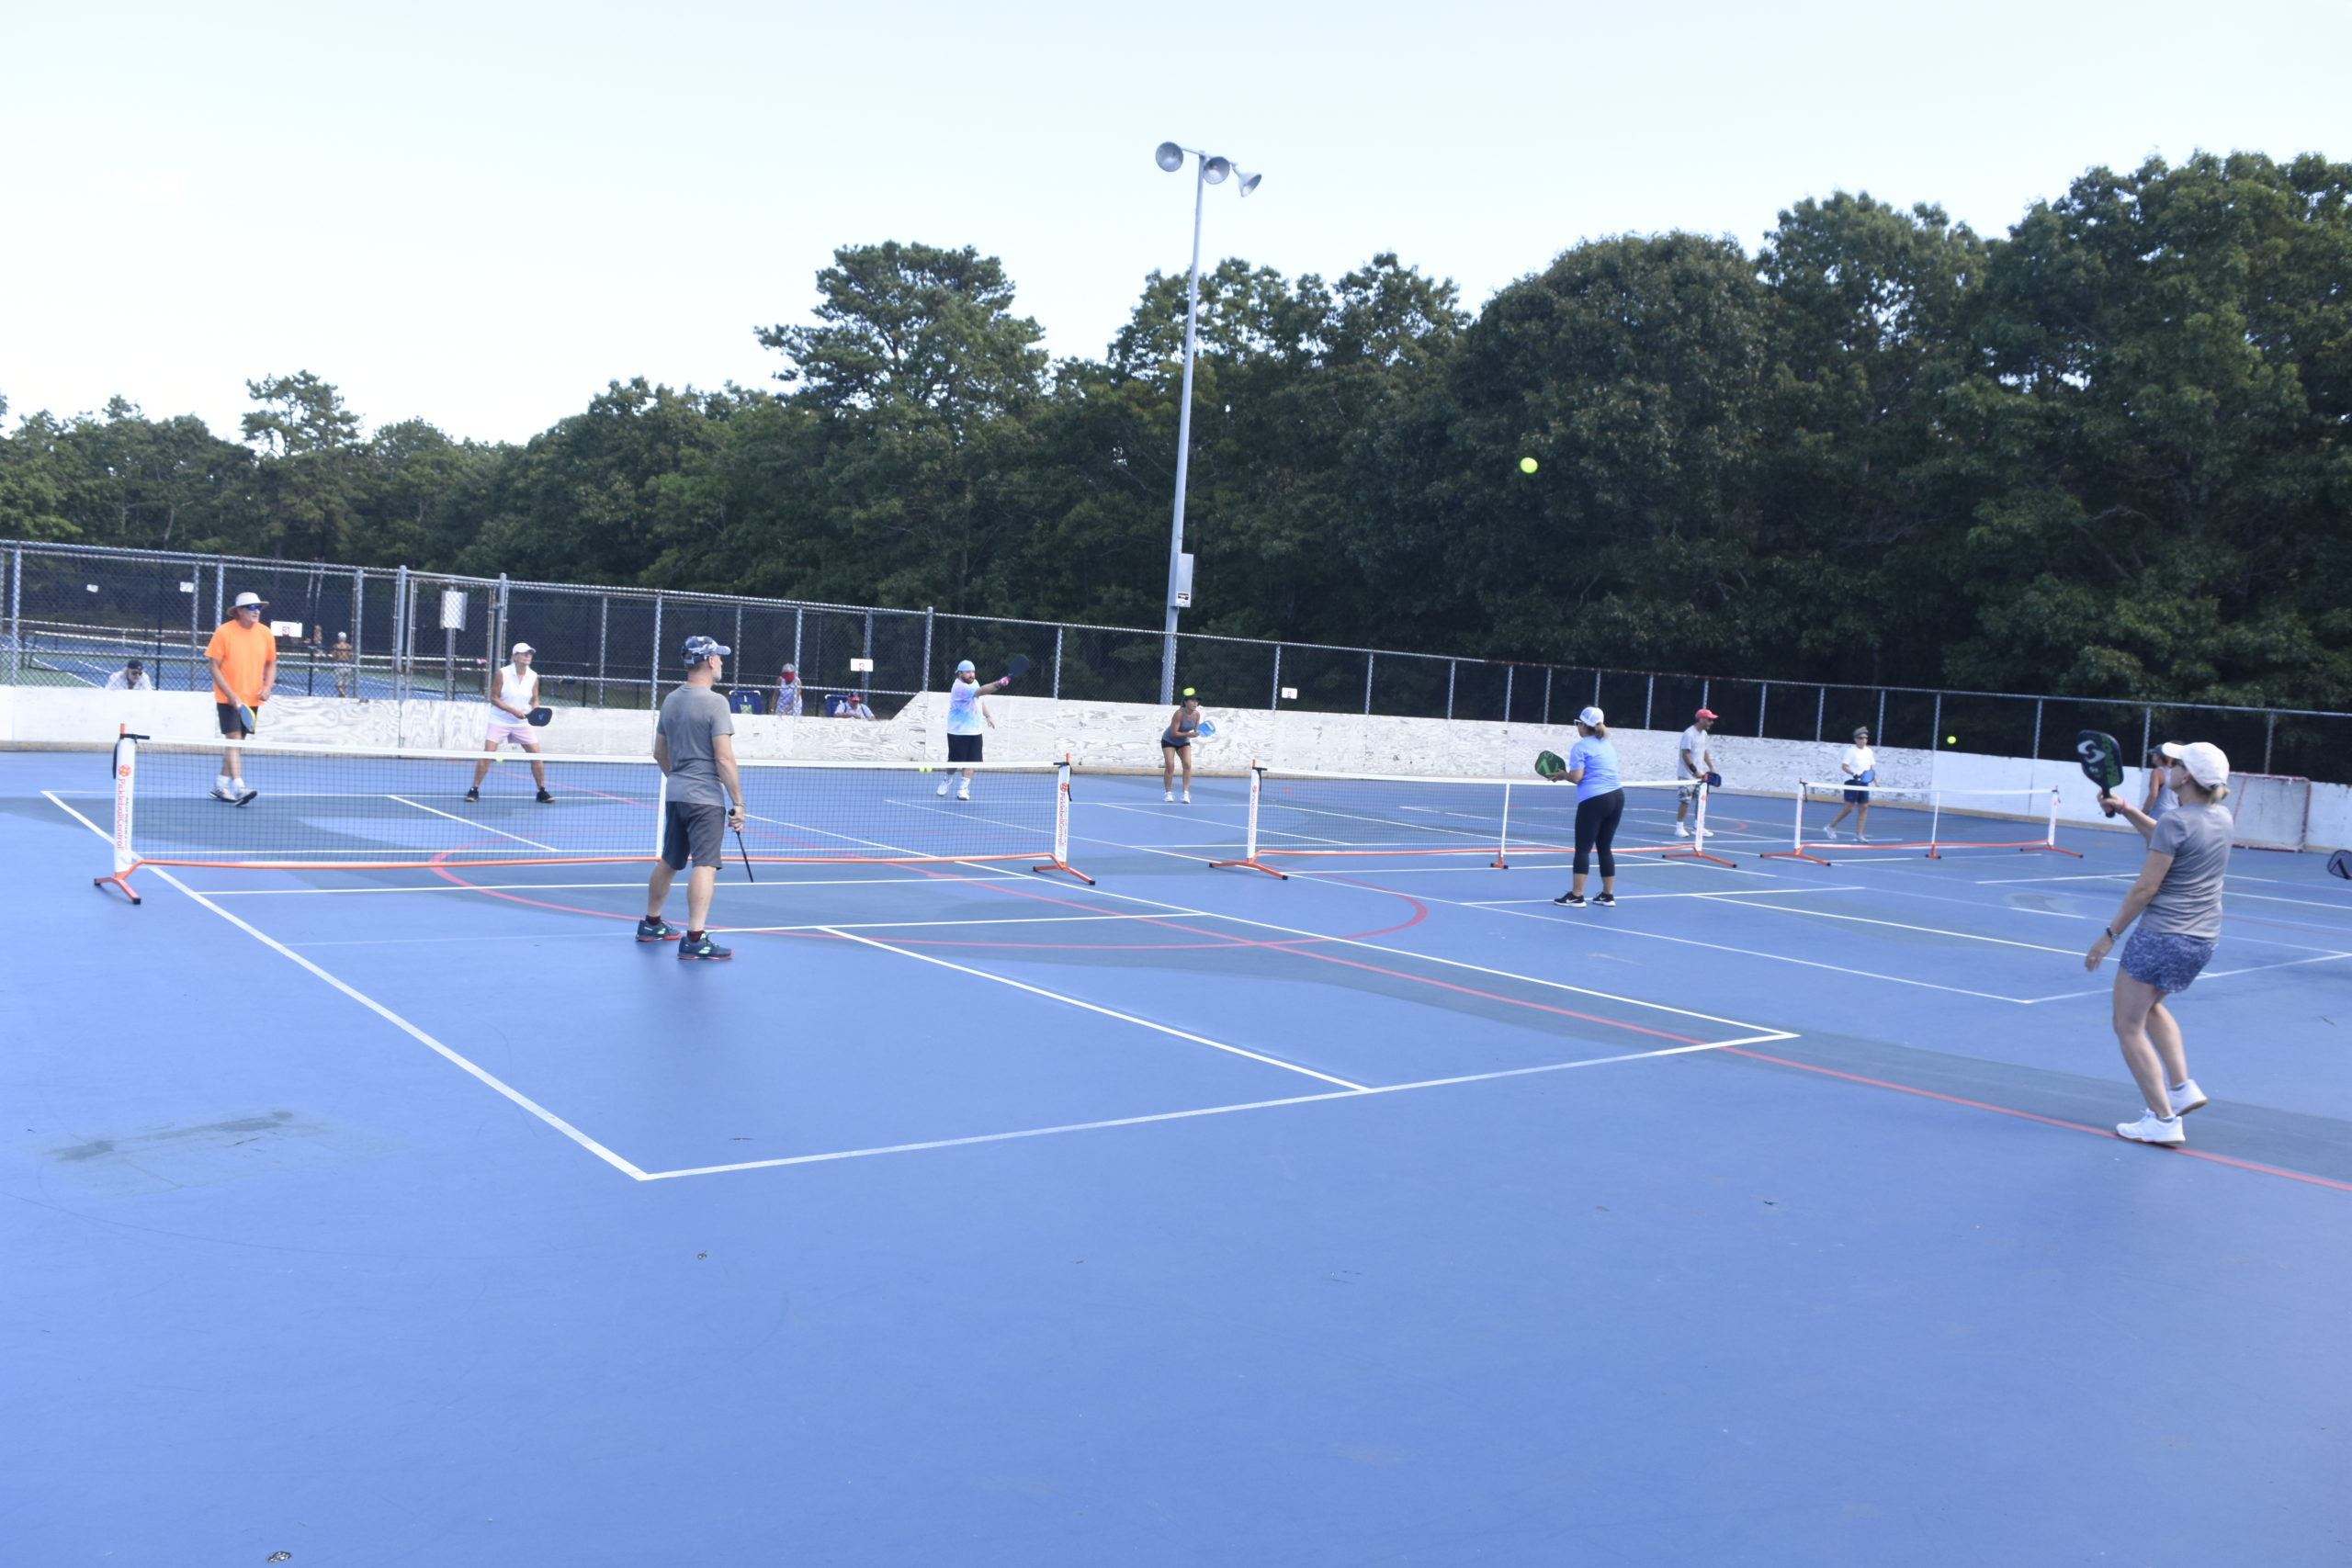 Over 110 people gathered at Red Creek Park in Hampton Bays this past weekend to partake in a pickleball tournament.